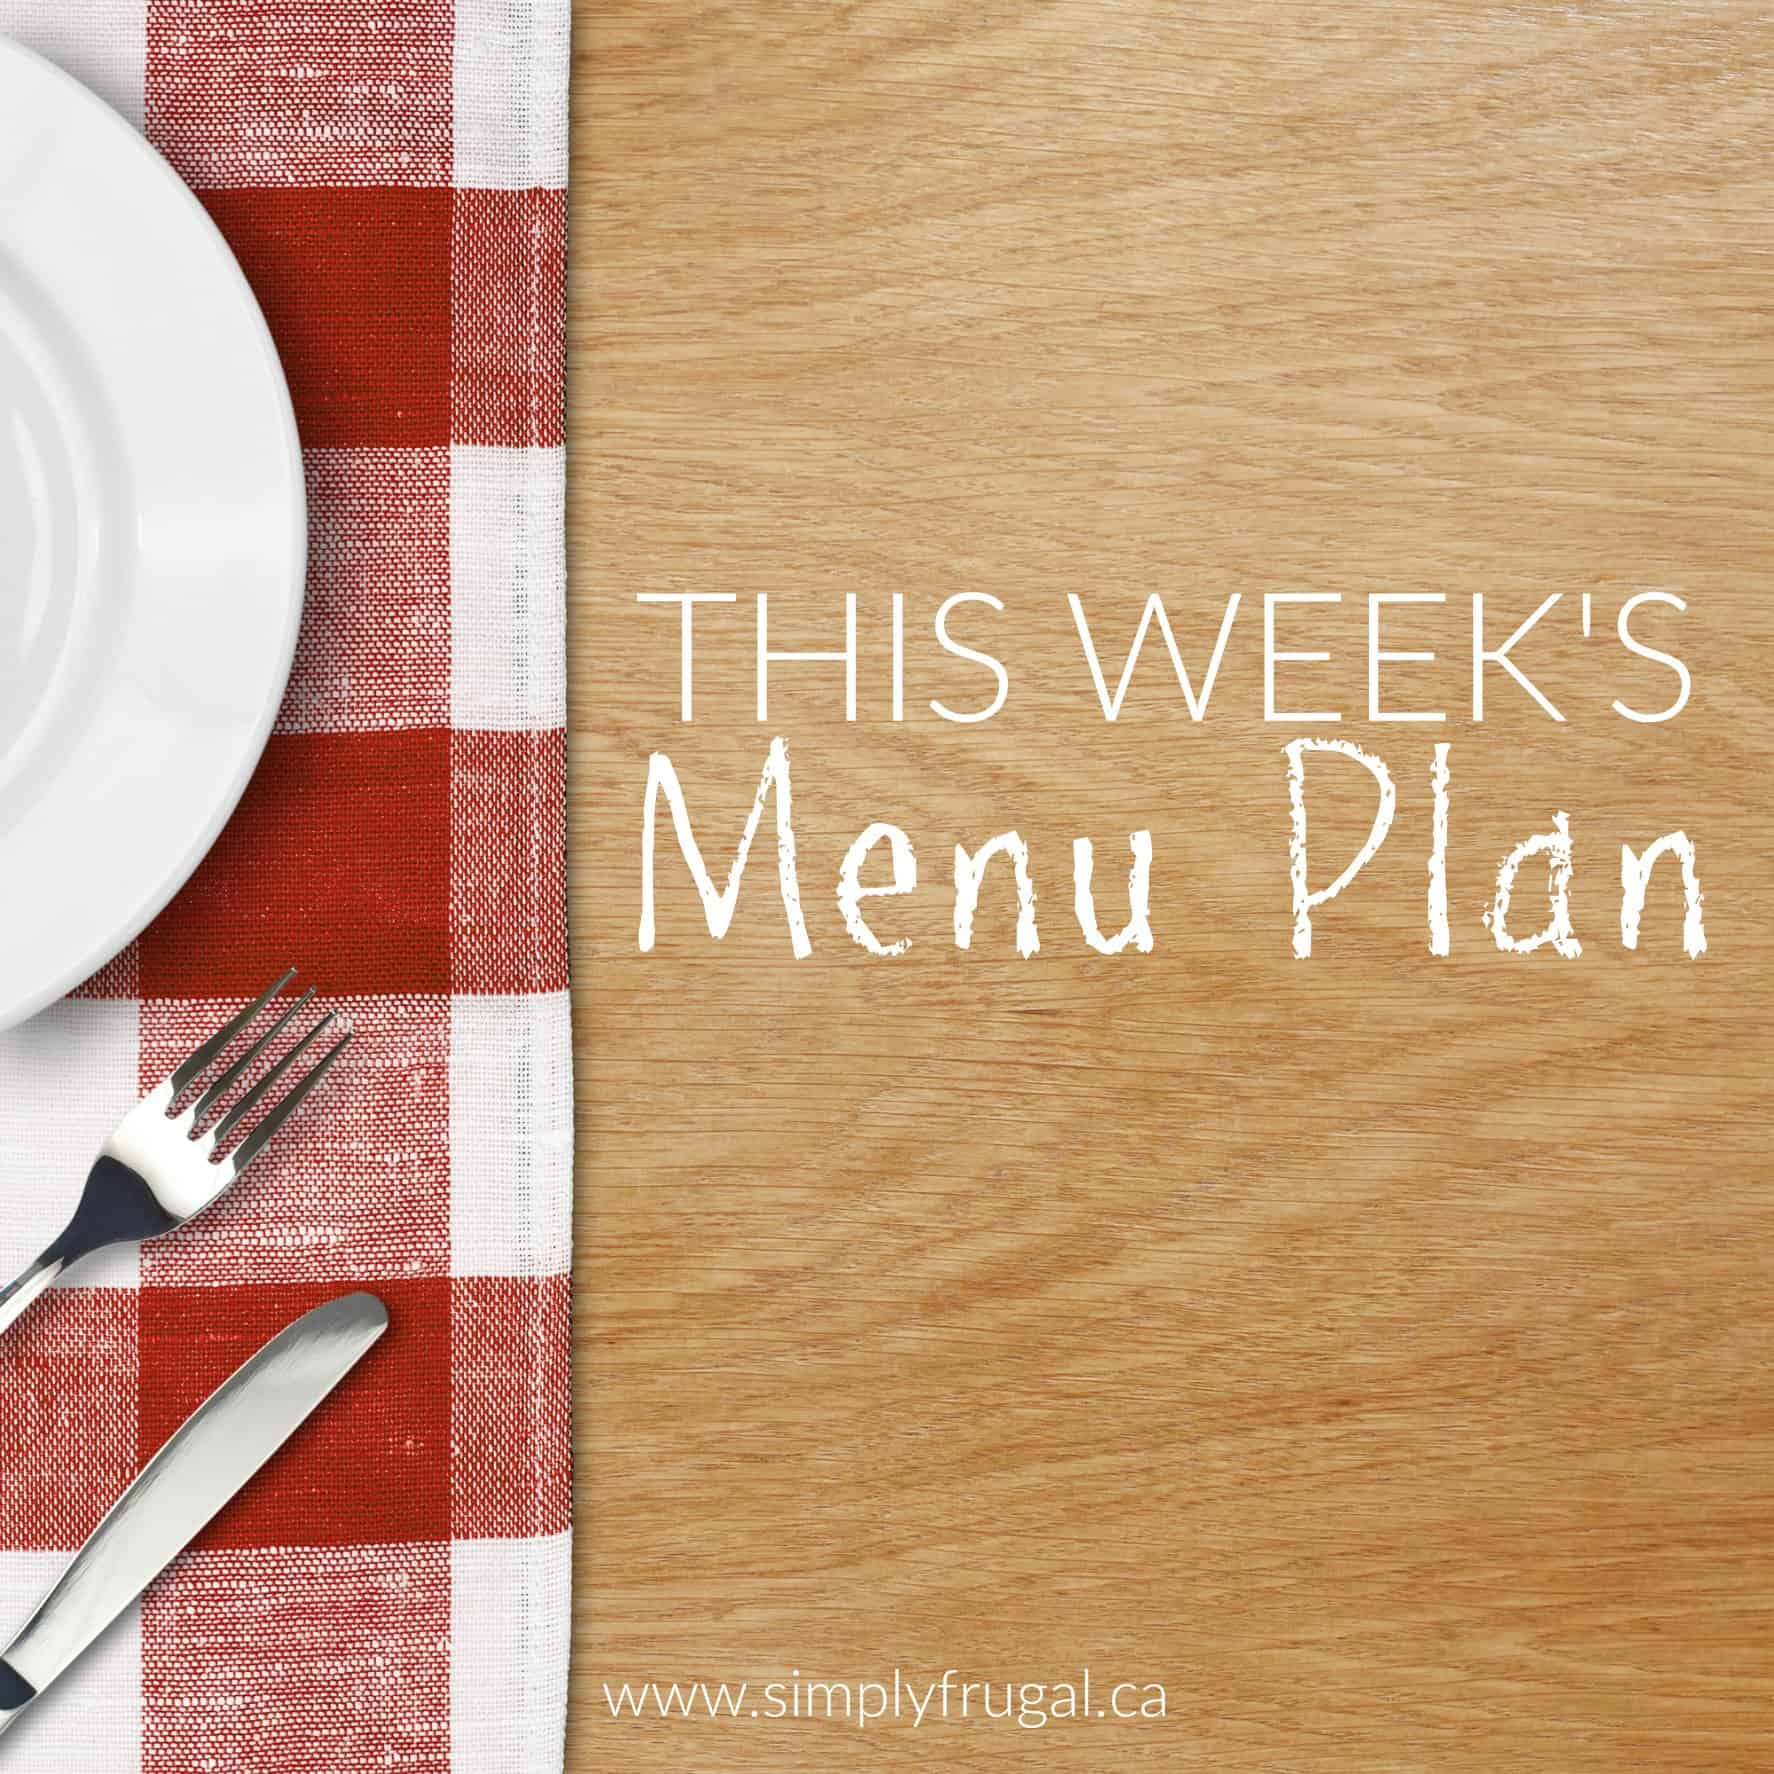 This week's menu plan from Simply Frugal